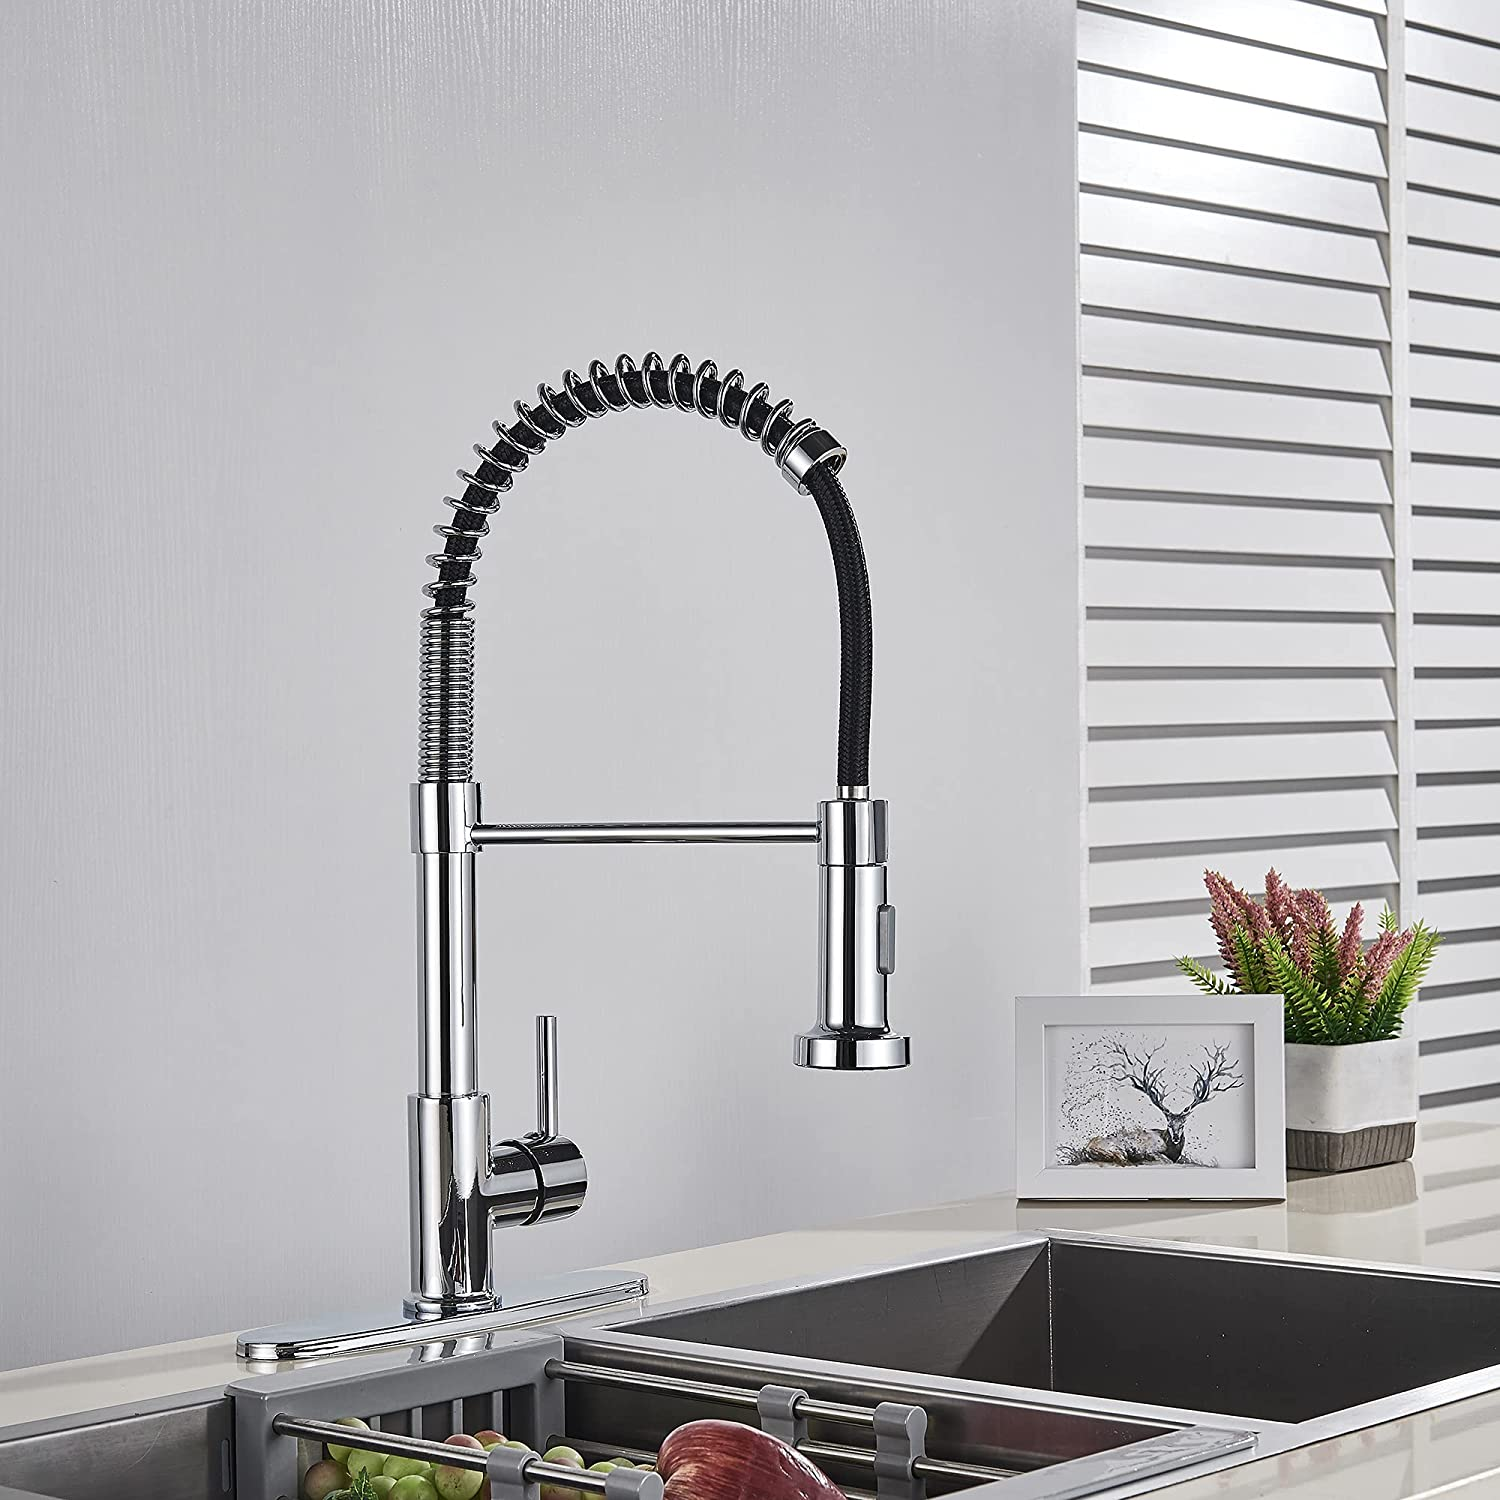 Commercial Chrome Kitchen Sink Faucets Single Handle Pull Down Sprayer Mixer Tap